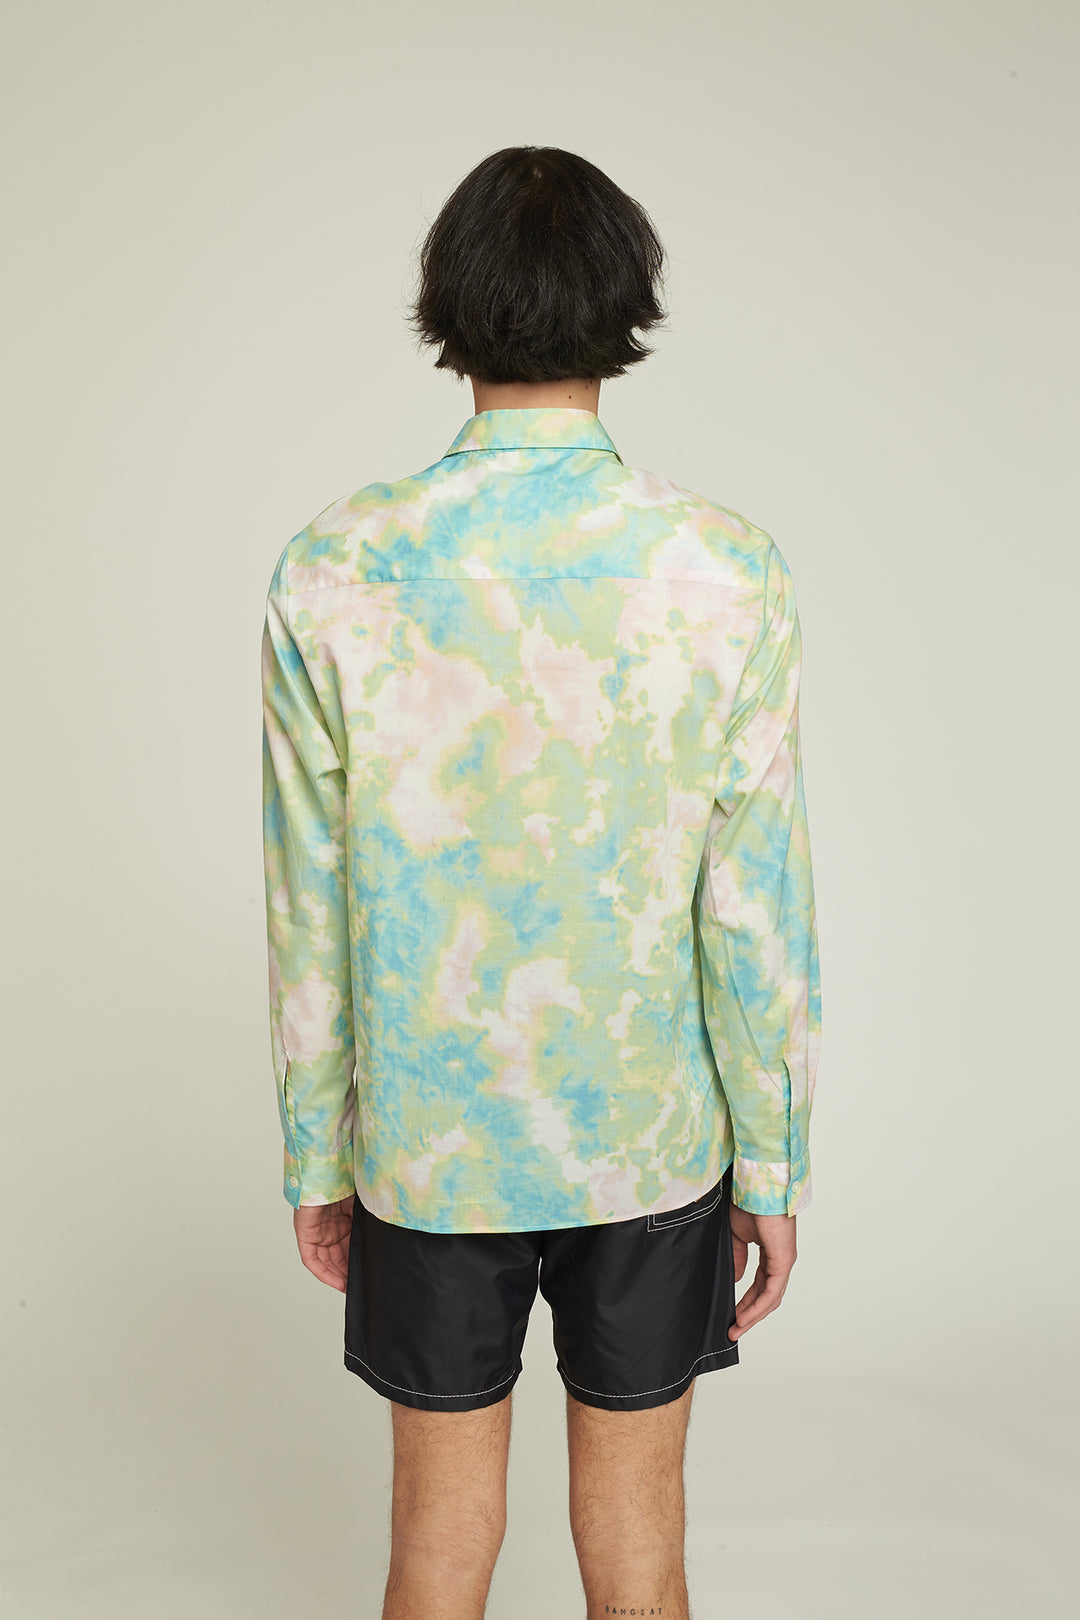 Smooth summer shirt with long sleeves, Tie and Dye.